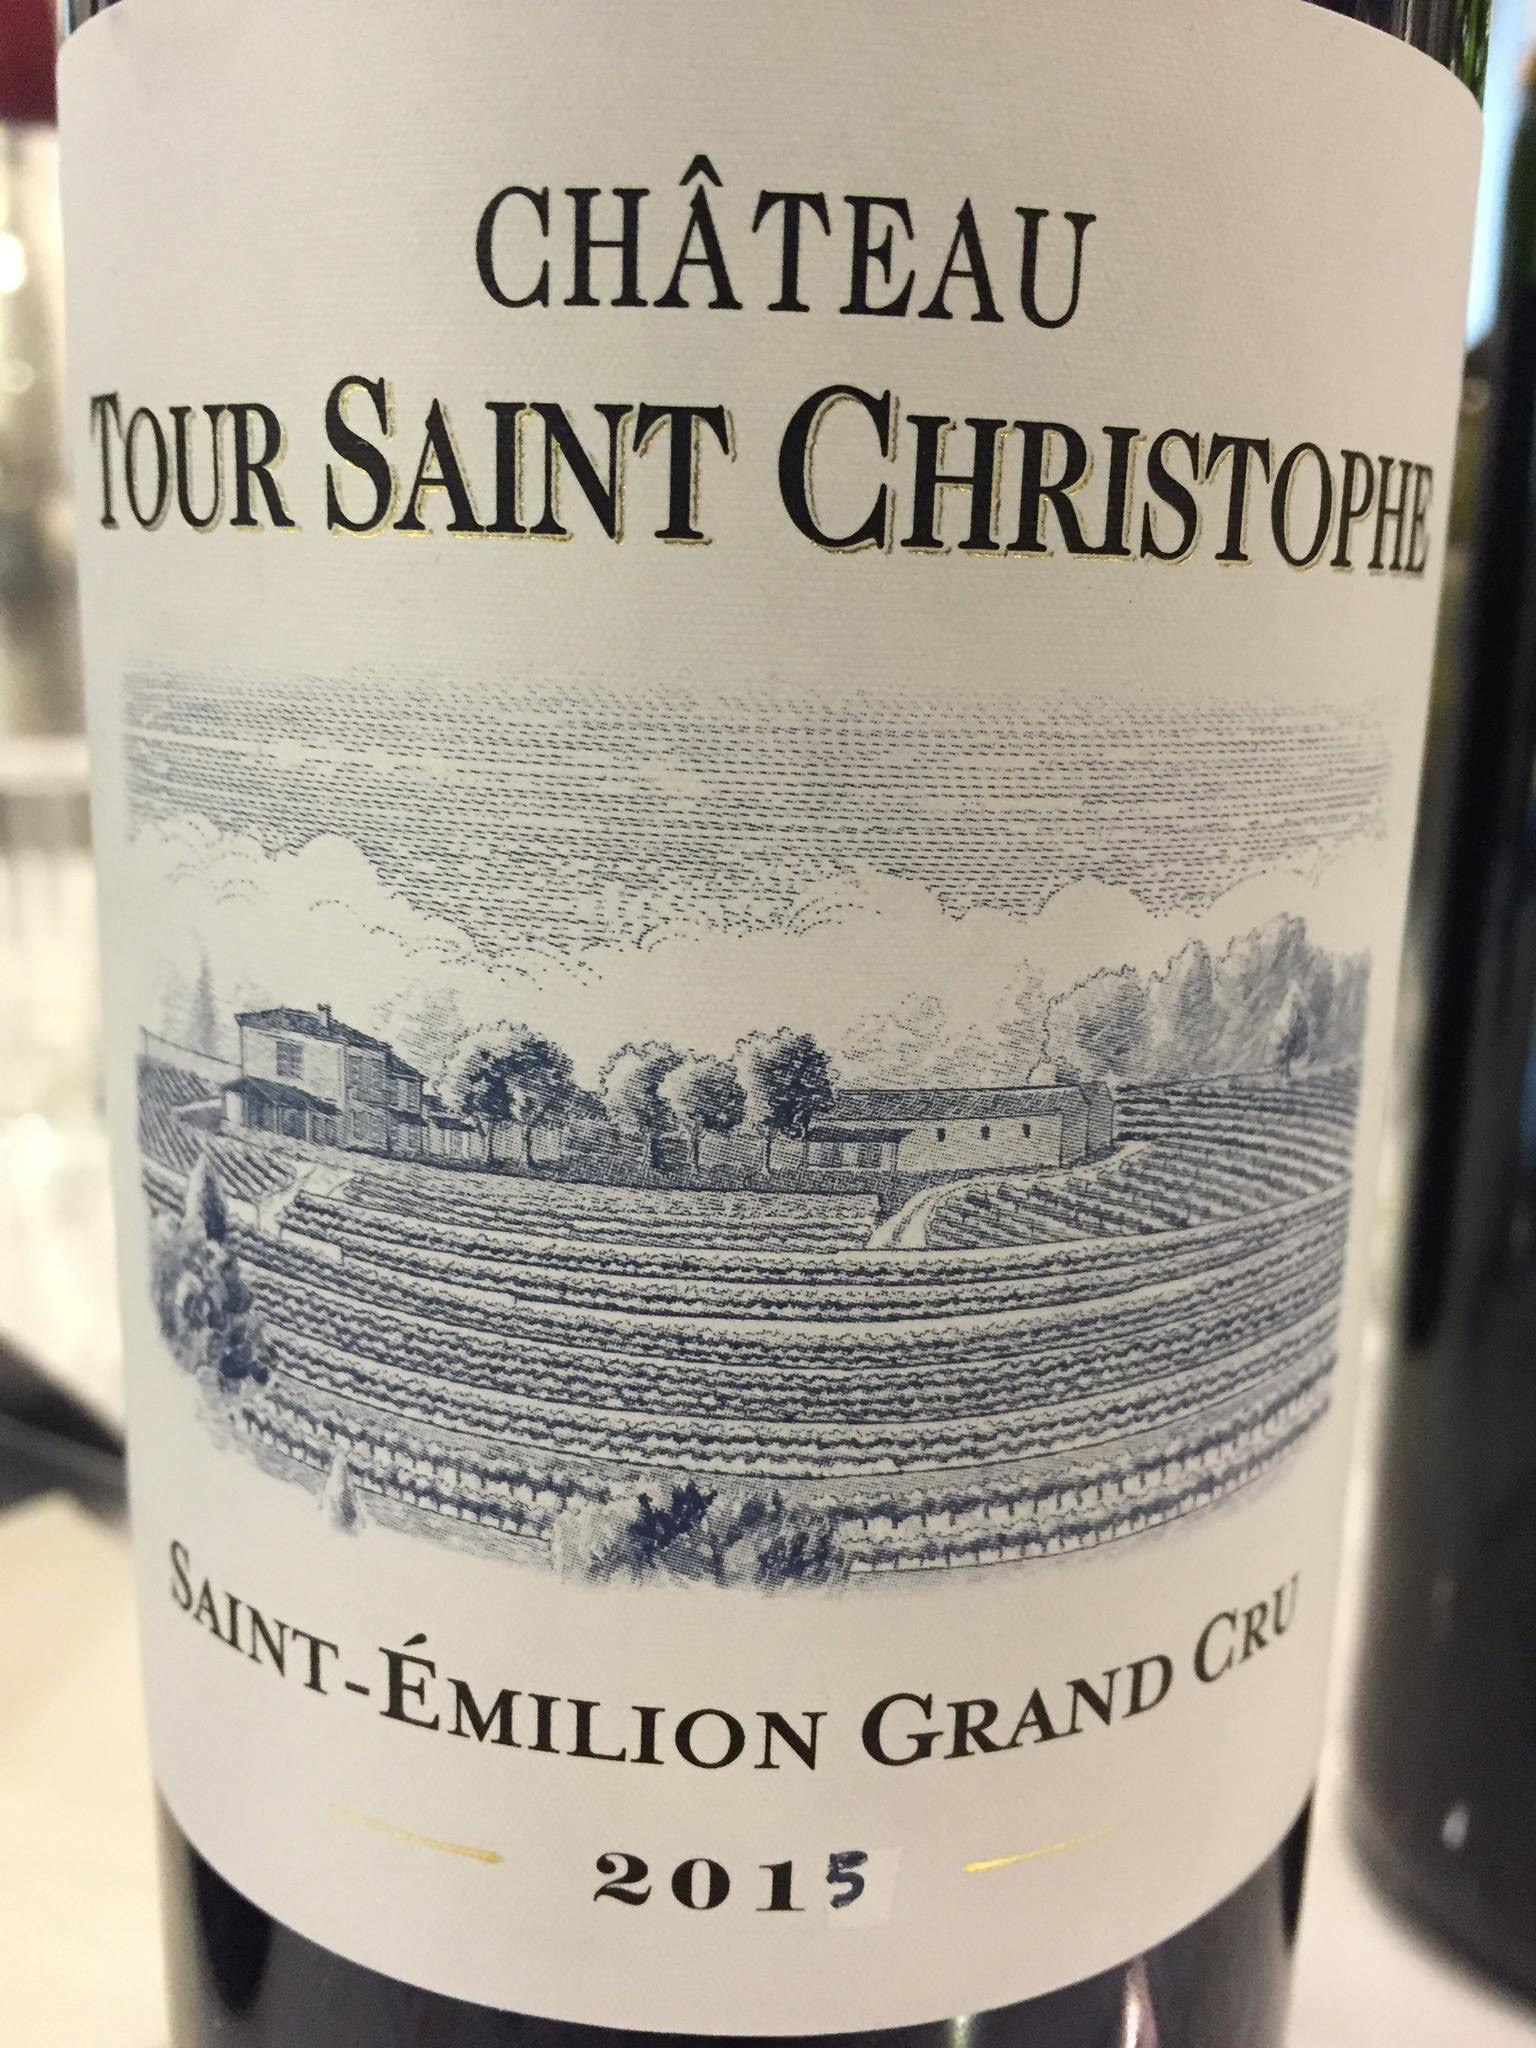 Château Tour Saint Christophe 2015 – Saint-Emilion Grand Cru